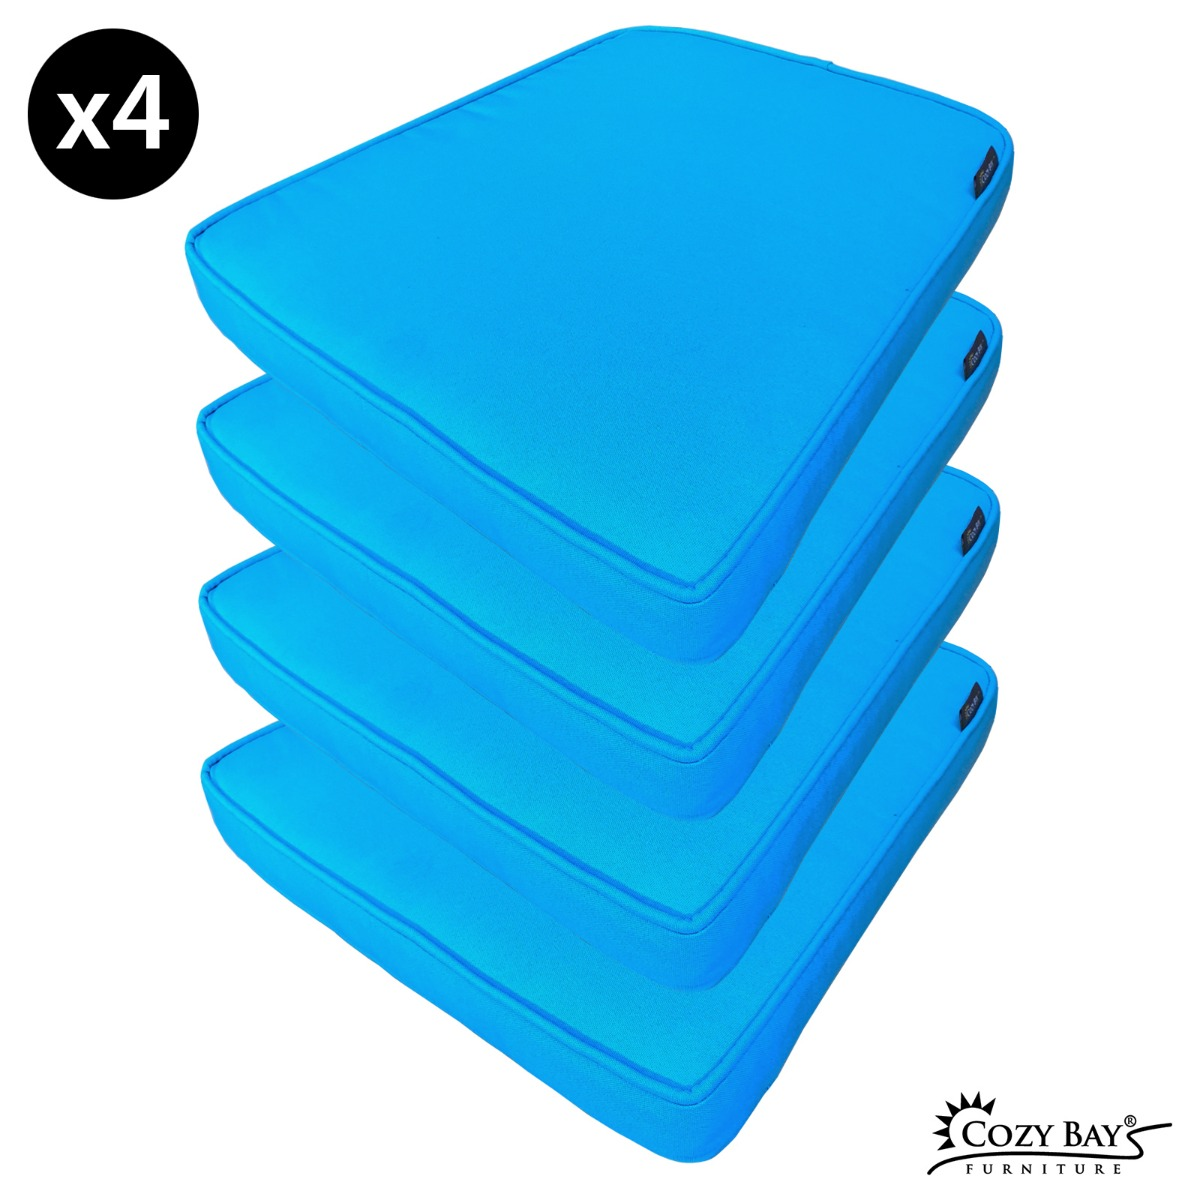 Caffe Latte Fabric Seat Pad (Set of 4) in Bright Blue